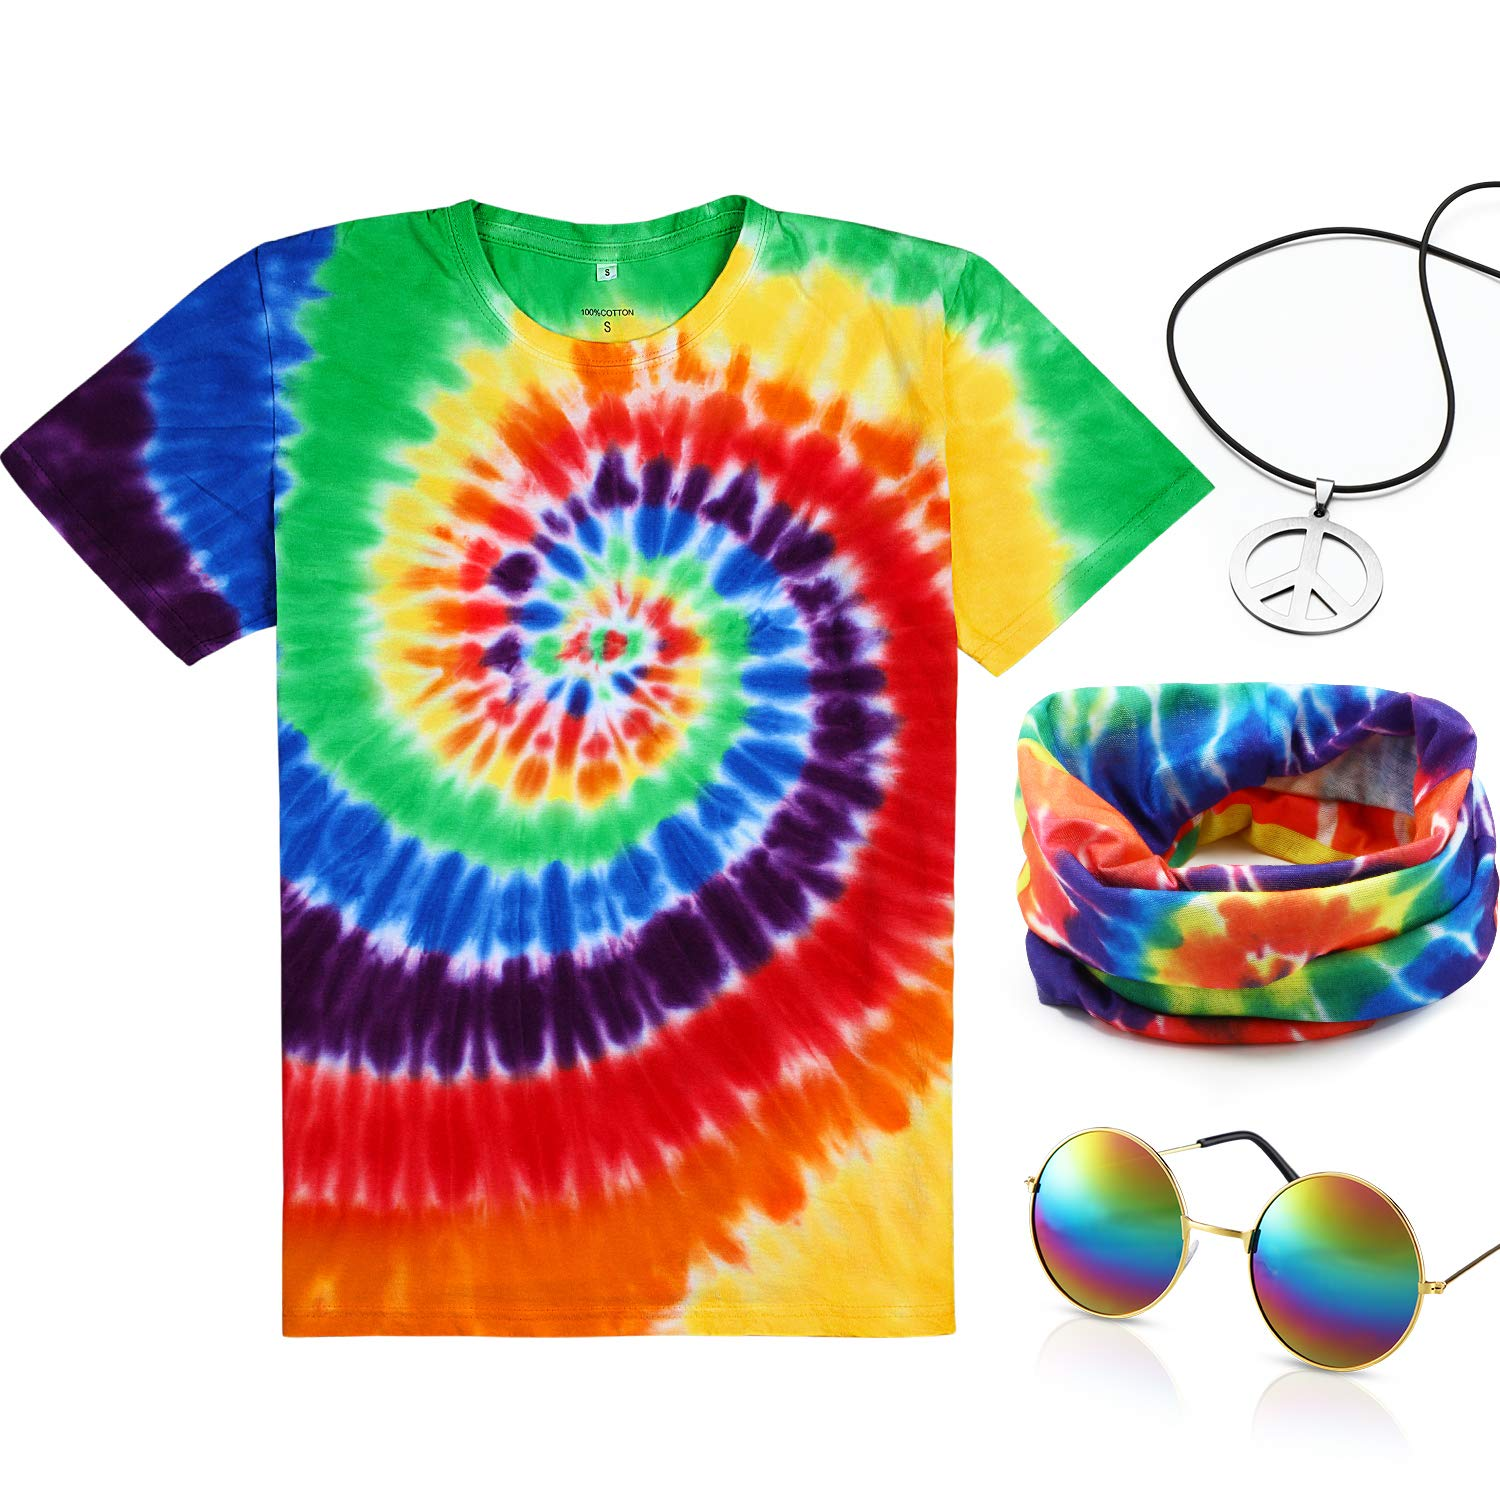 Mens Vintage Shirts – Casual, Dress, T-shirts, Polos 4 Pieces Hippie Costume Set Include Colorful Tie-Dye T-Shirt Peace Sign Necklace Headband and Sunglasses for Theme Parties $23.99 AT vintagedancer.com